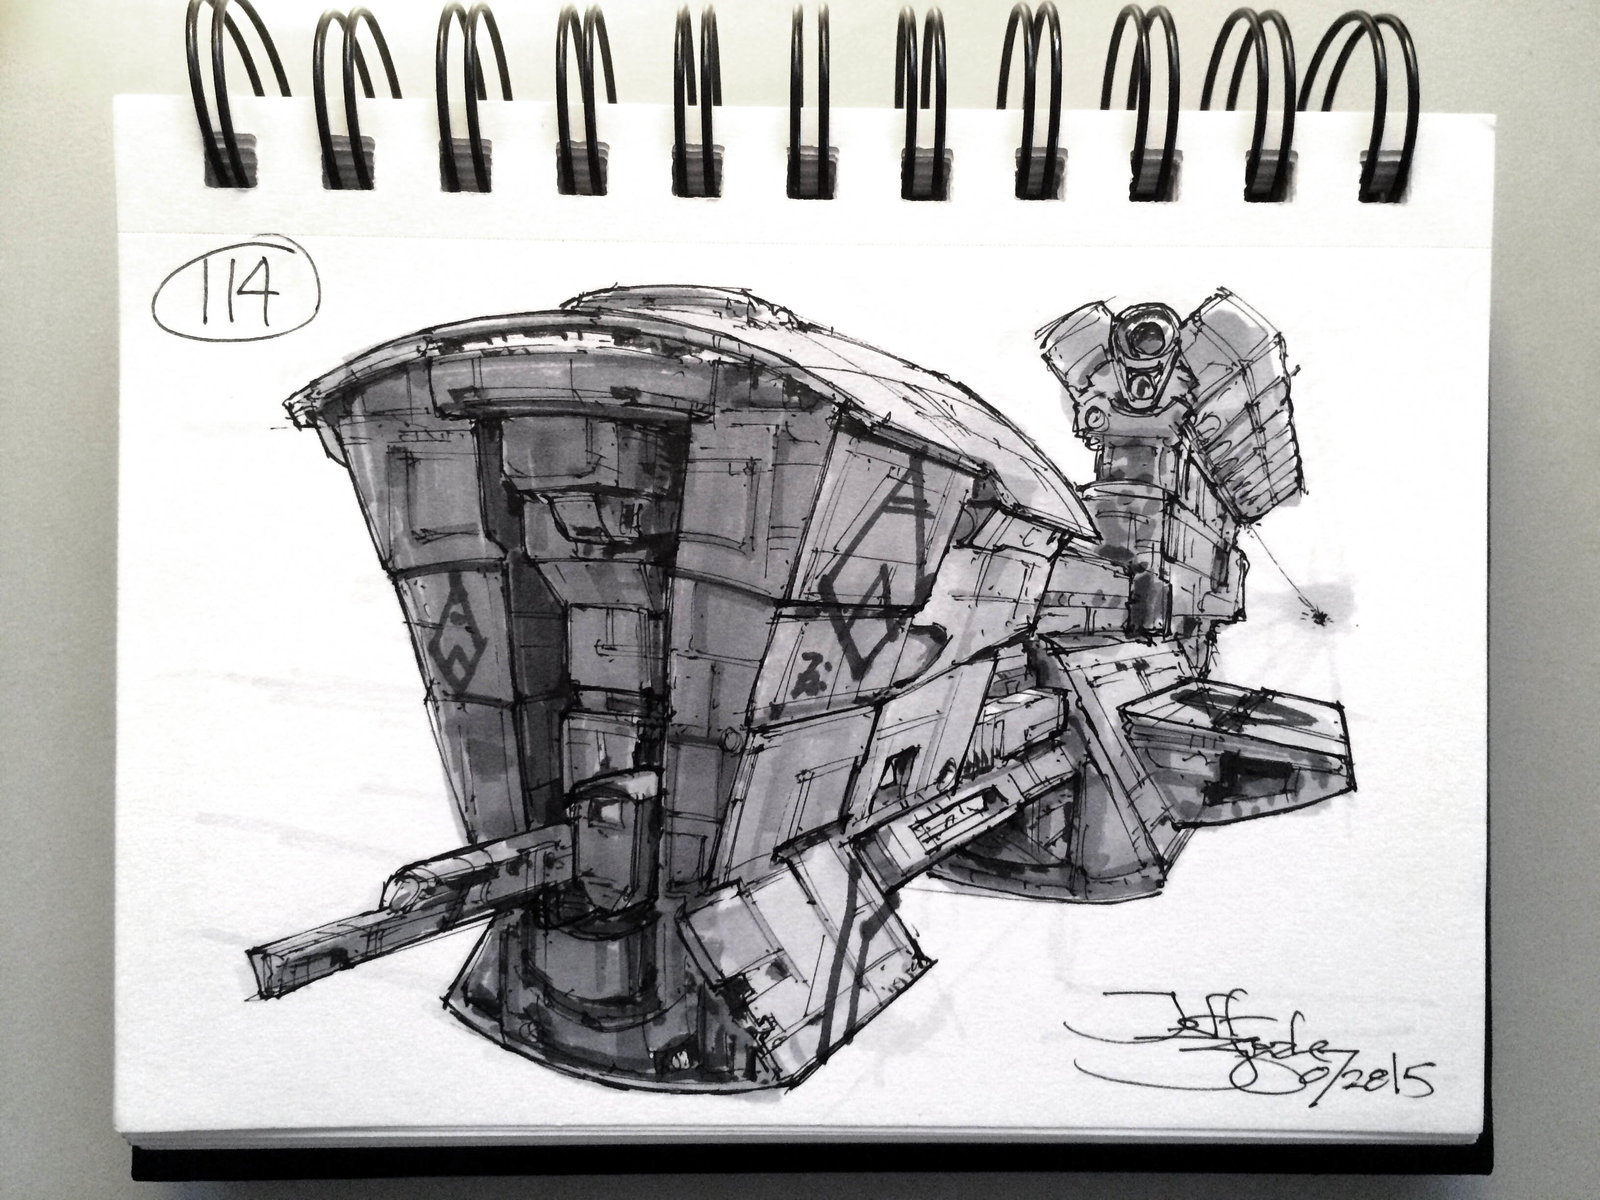 SpaceshipADay 114